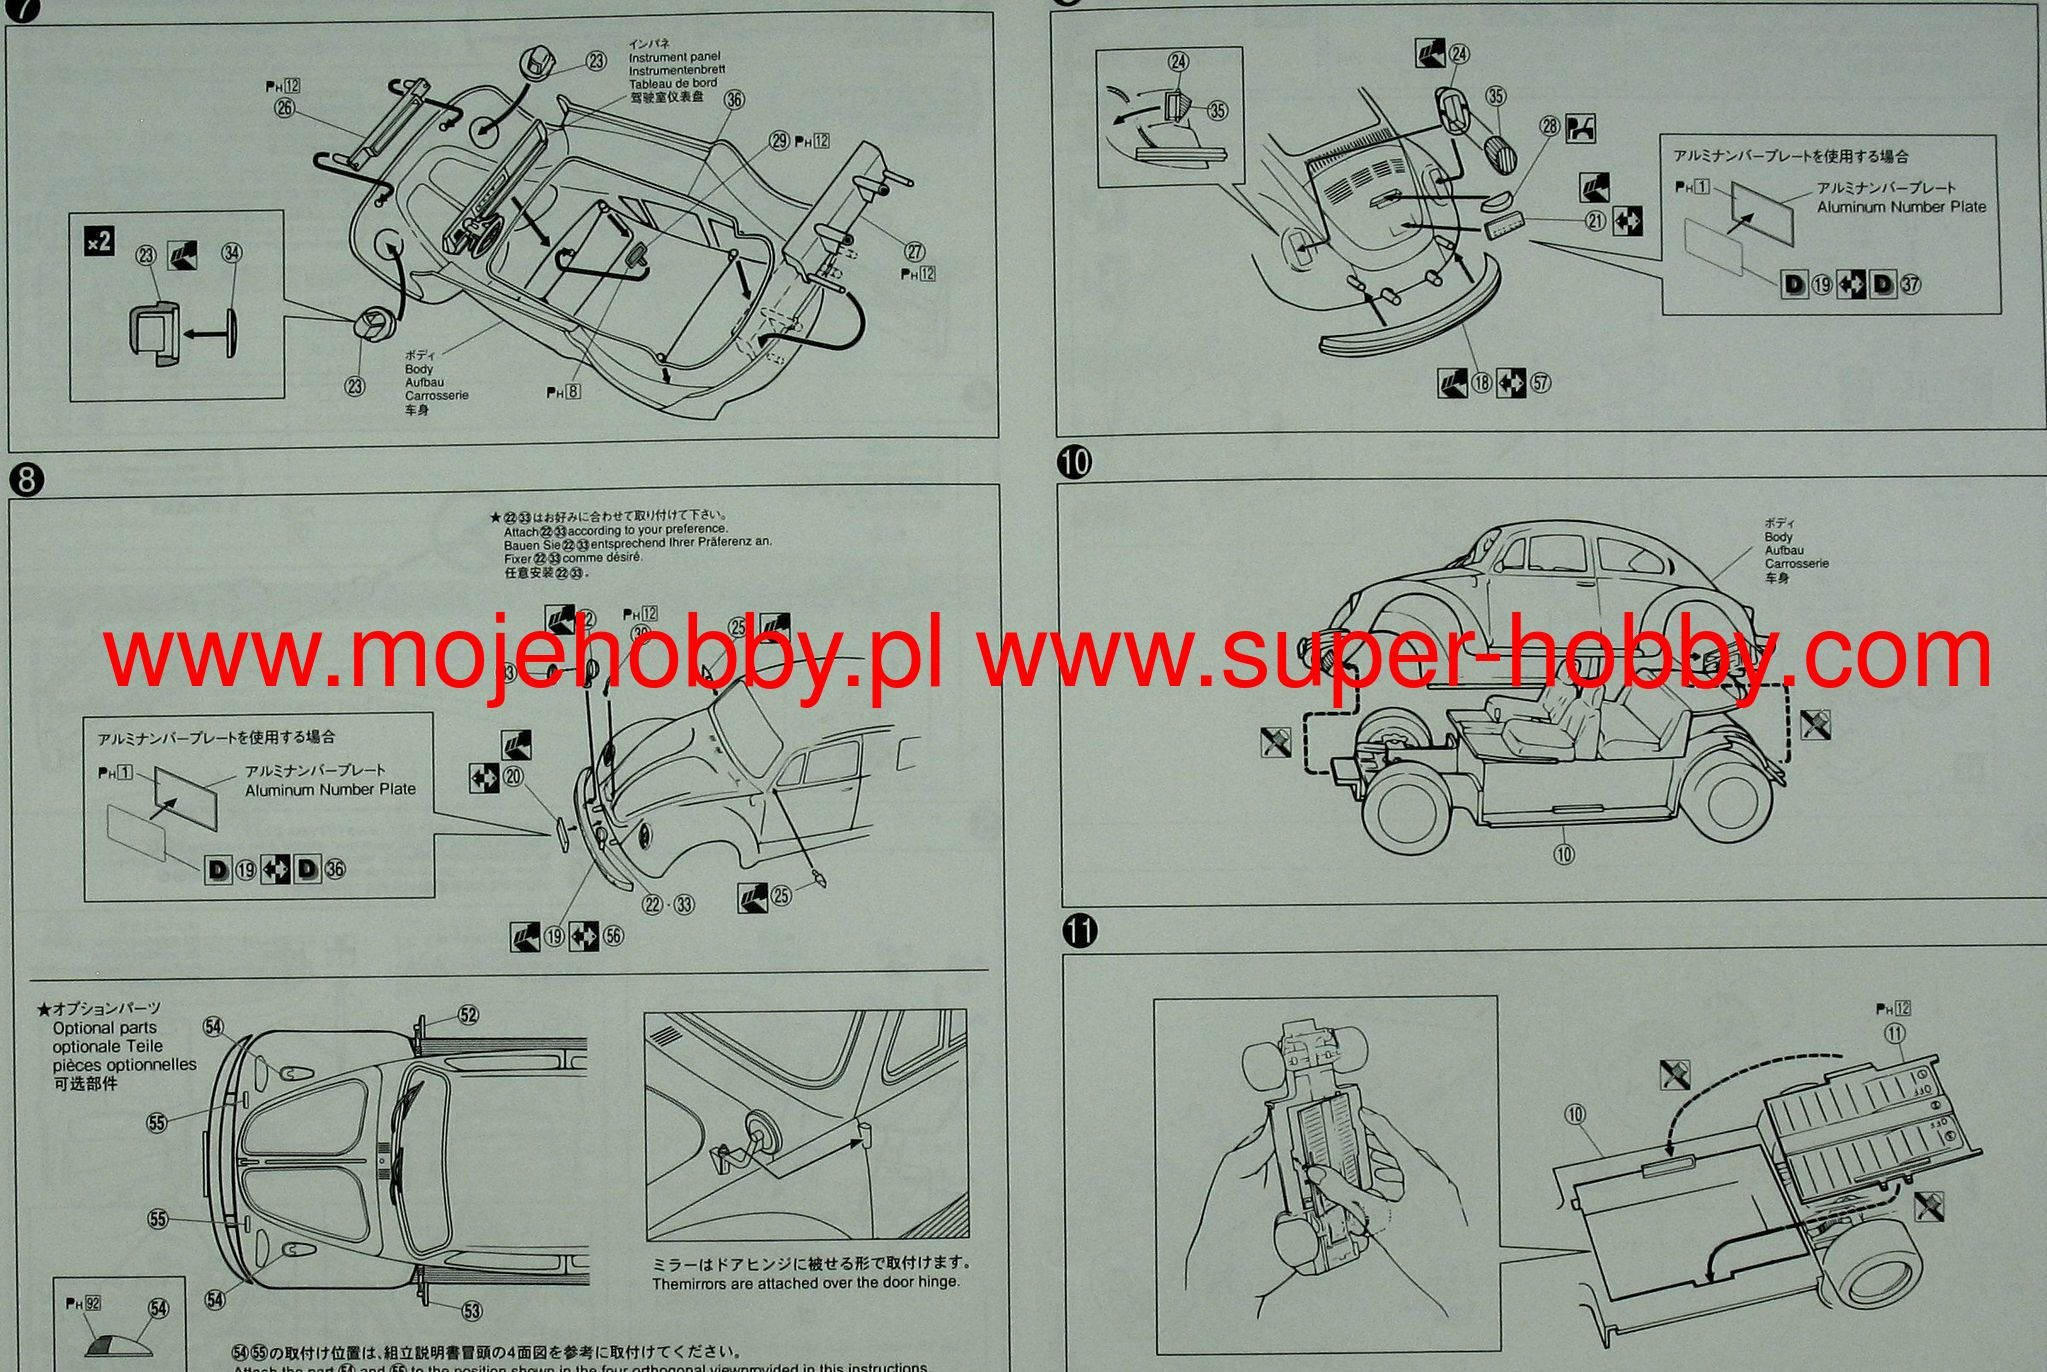 Vw 36 Horse Diagram Wiring Diagrams Click Volkswagen New Beetle Schematics Type 1 Transmission 13ad 1303s